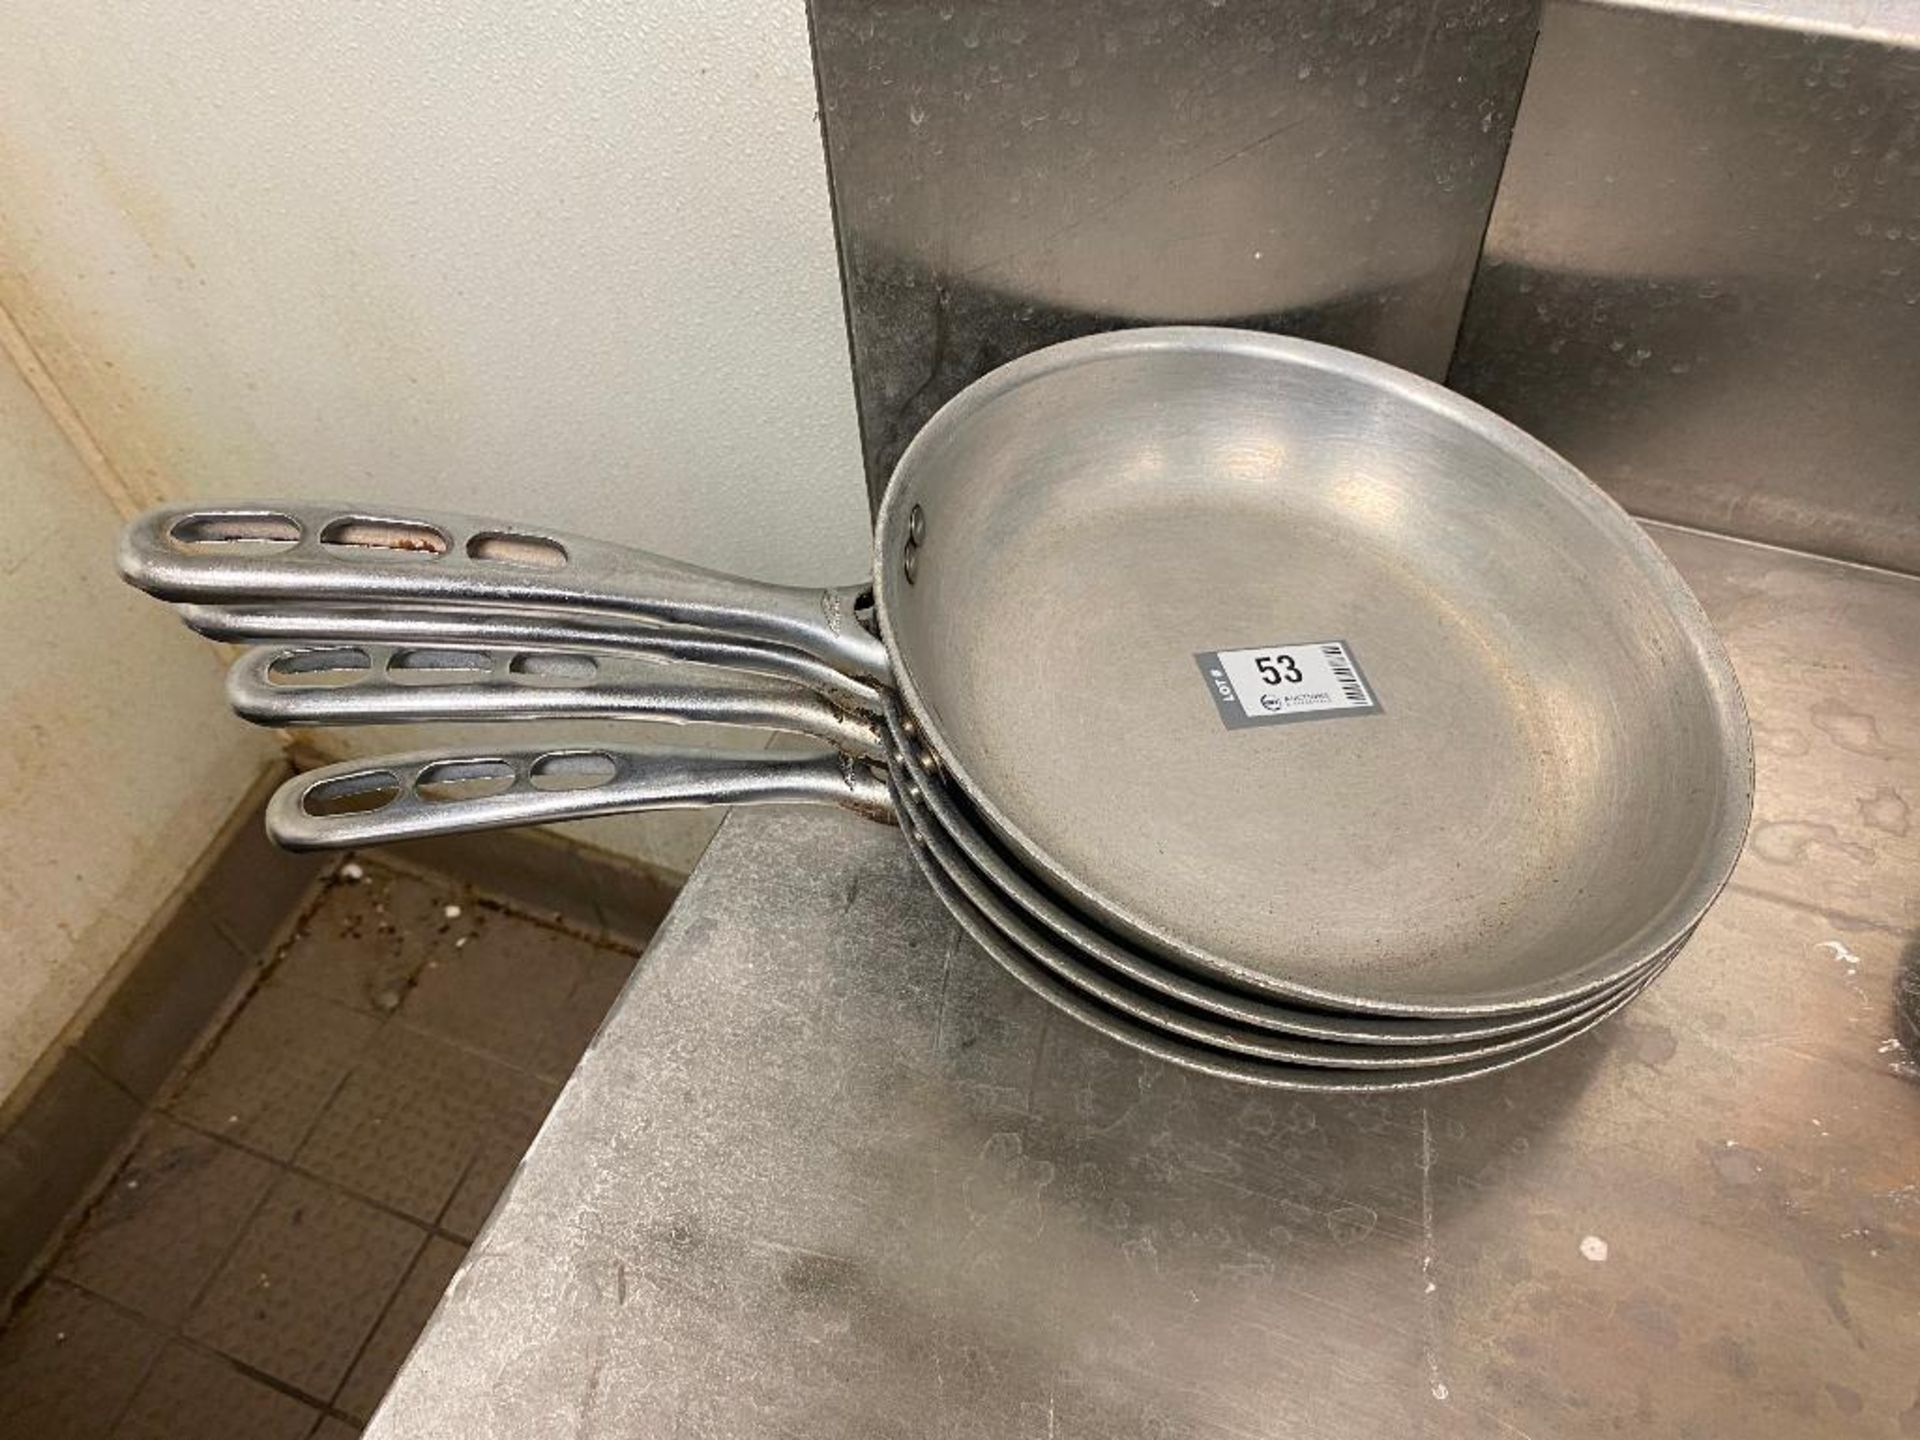 """LOT OF (4) 10"""" VOLLRATH FRYING PANS - Image 2 of 2"""